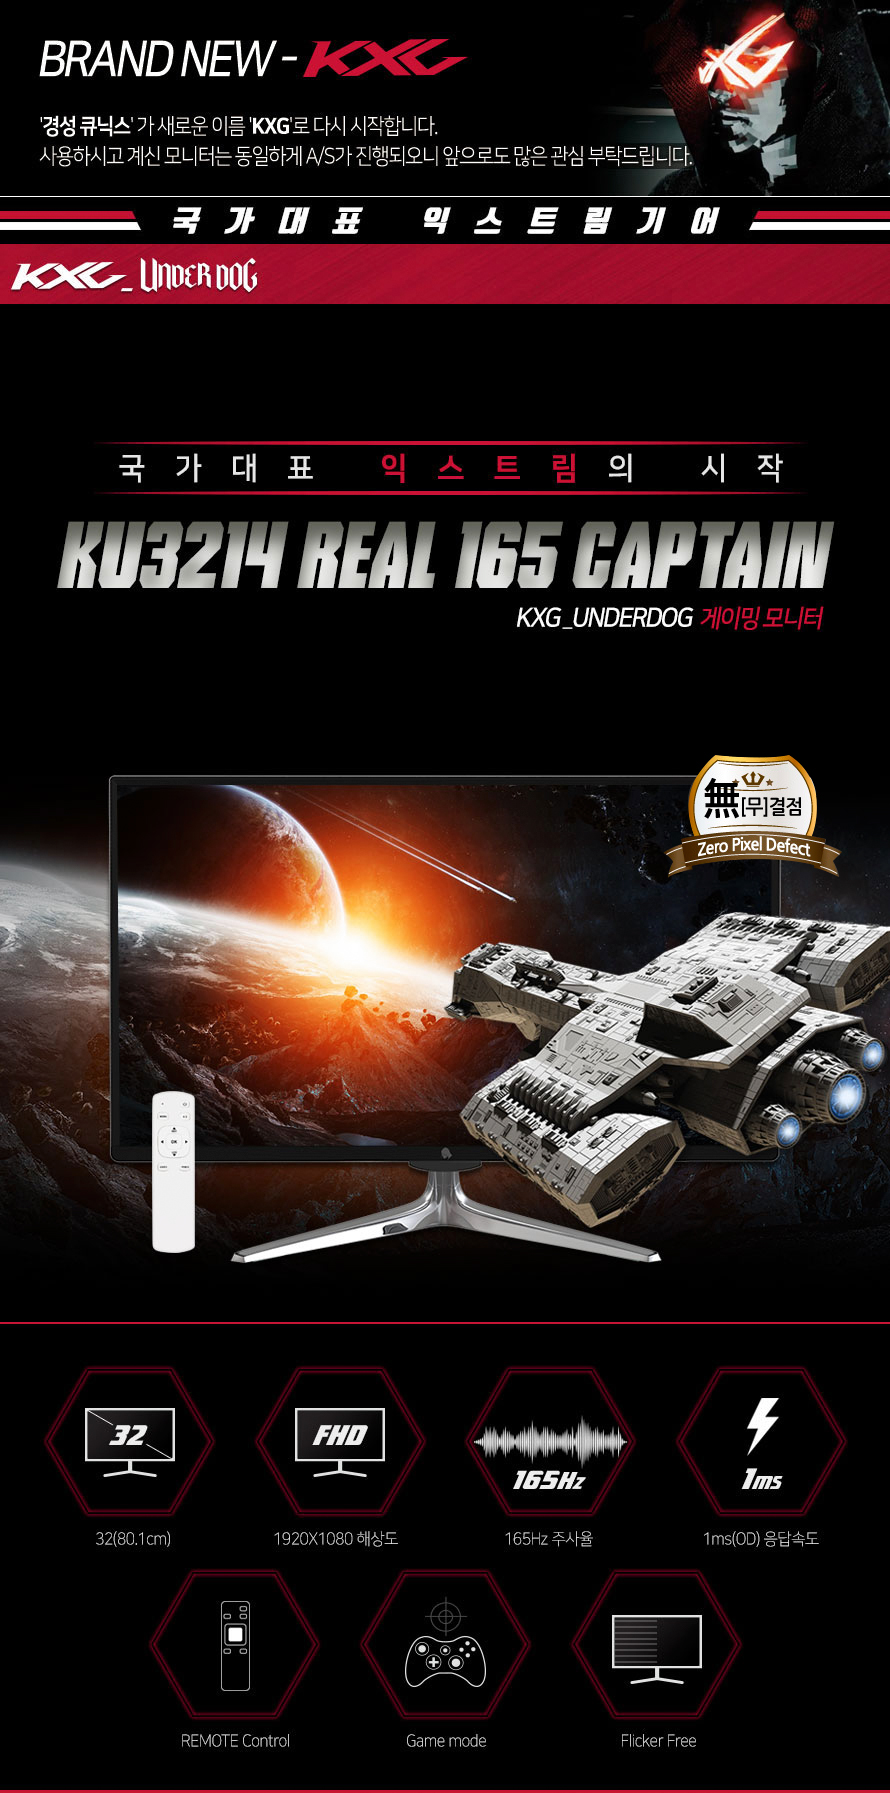 KXG UNDERDOG KU3214 REAL 165 CAPTAIN 무결점